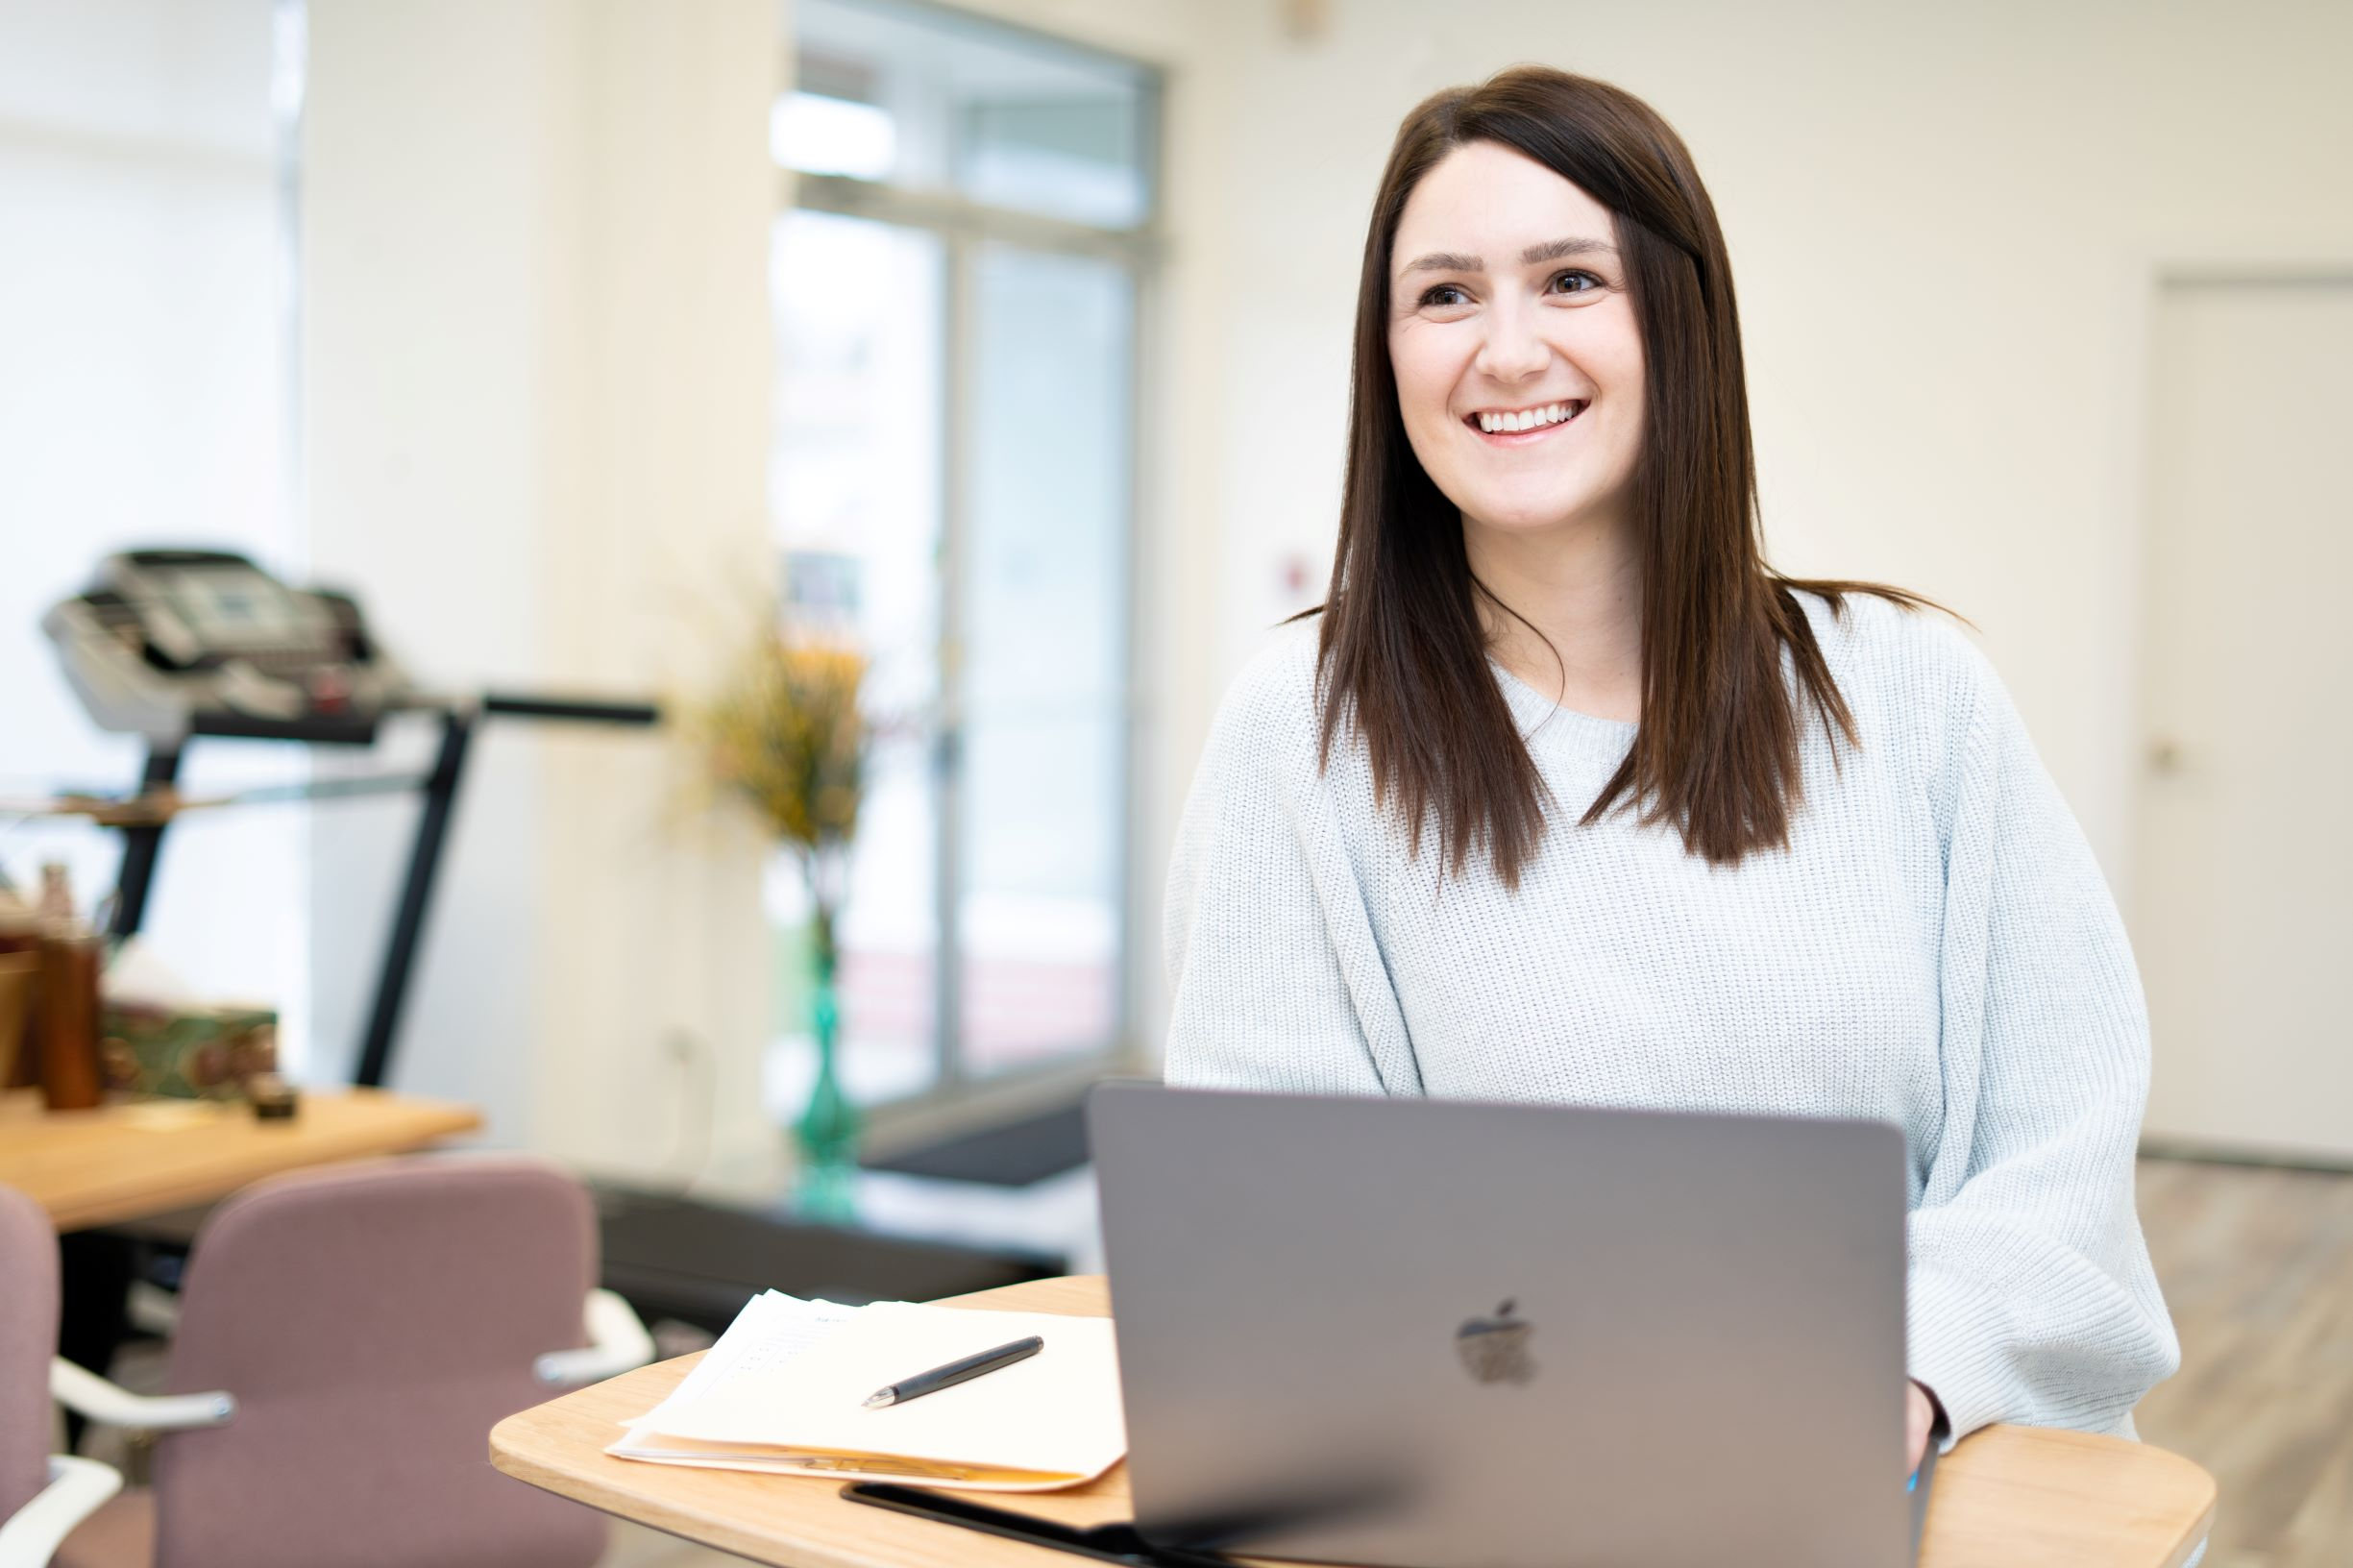 Smiling occupational therapist with open computer engaging with clients